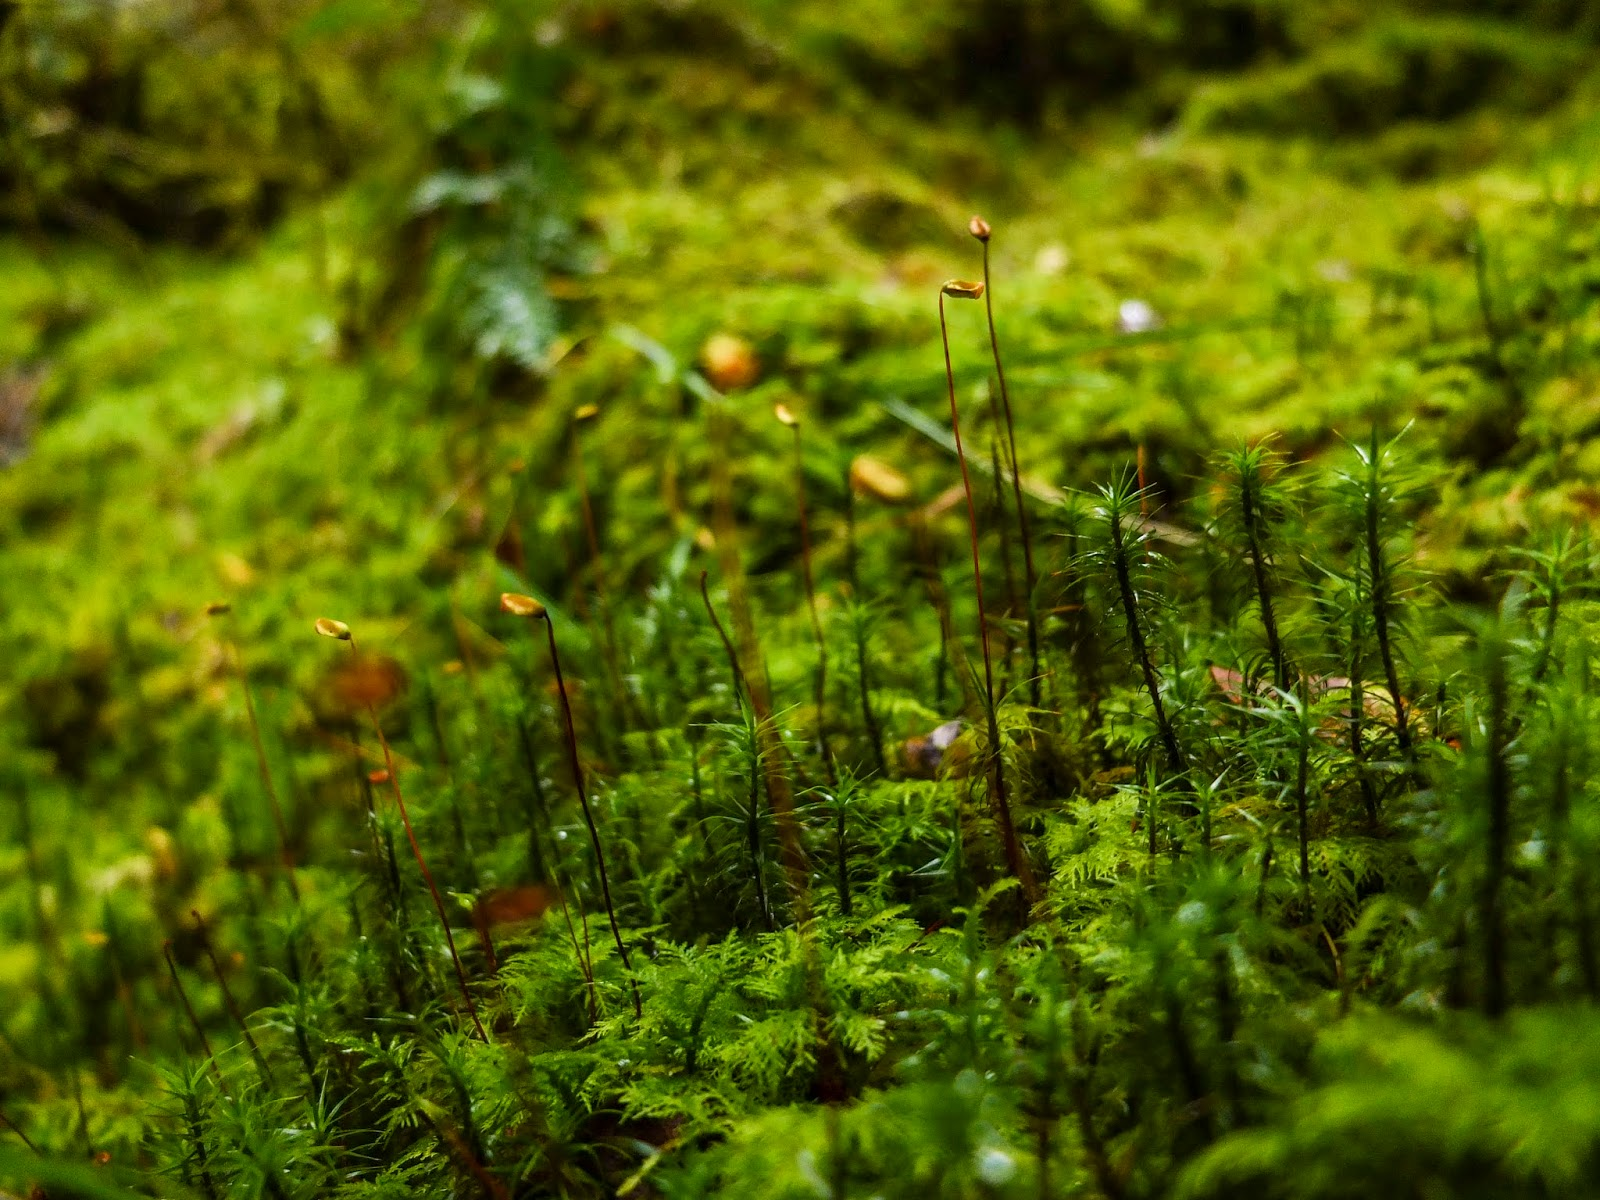 A close up of moss inside a forest.